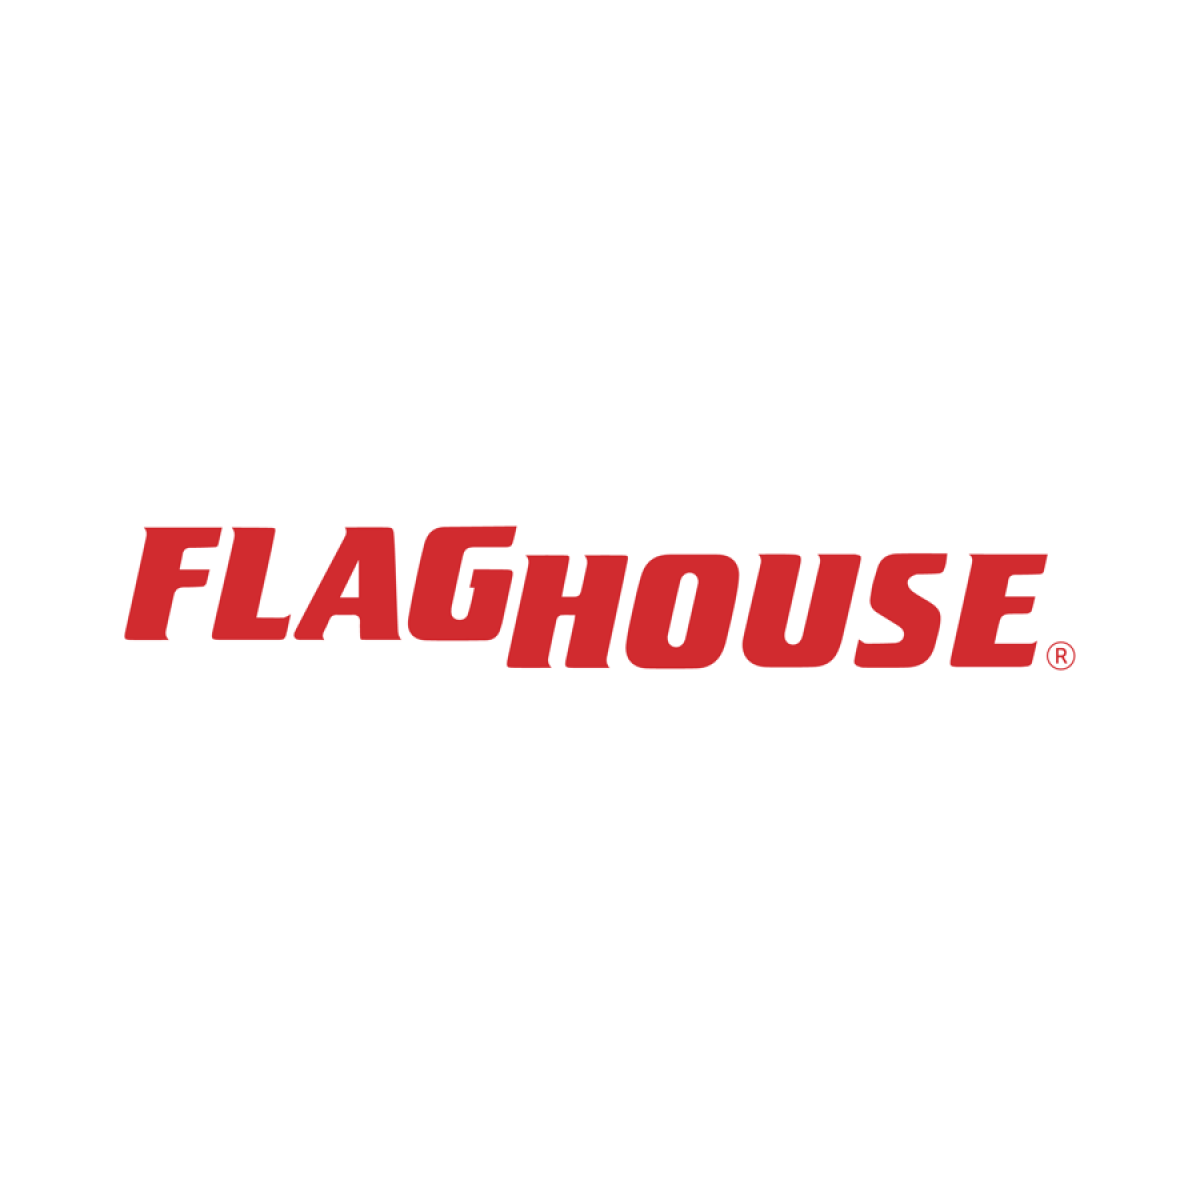 FlagHouse Logo